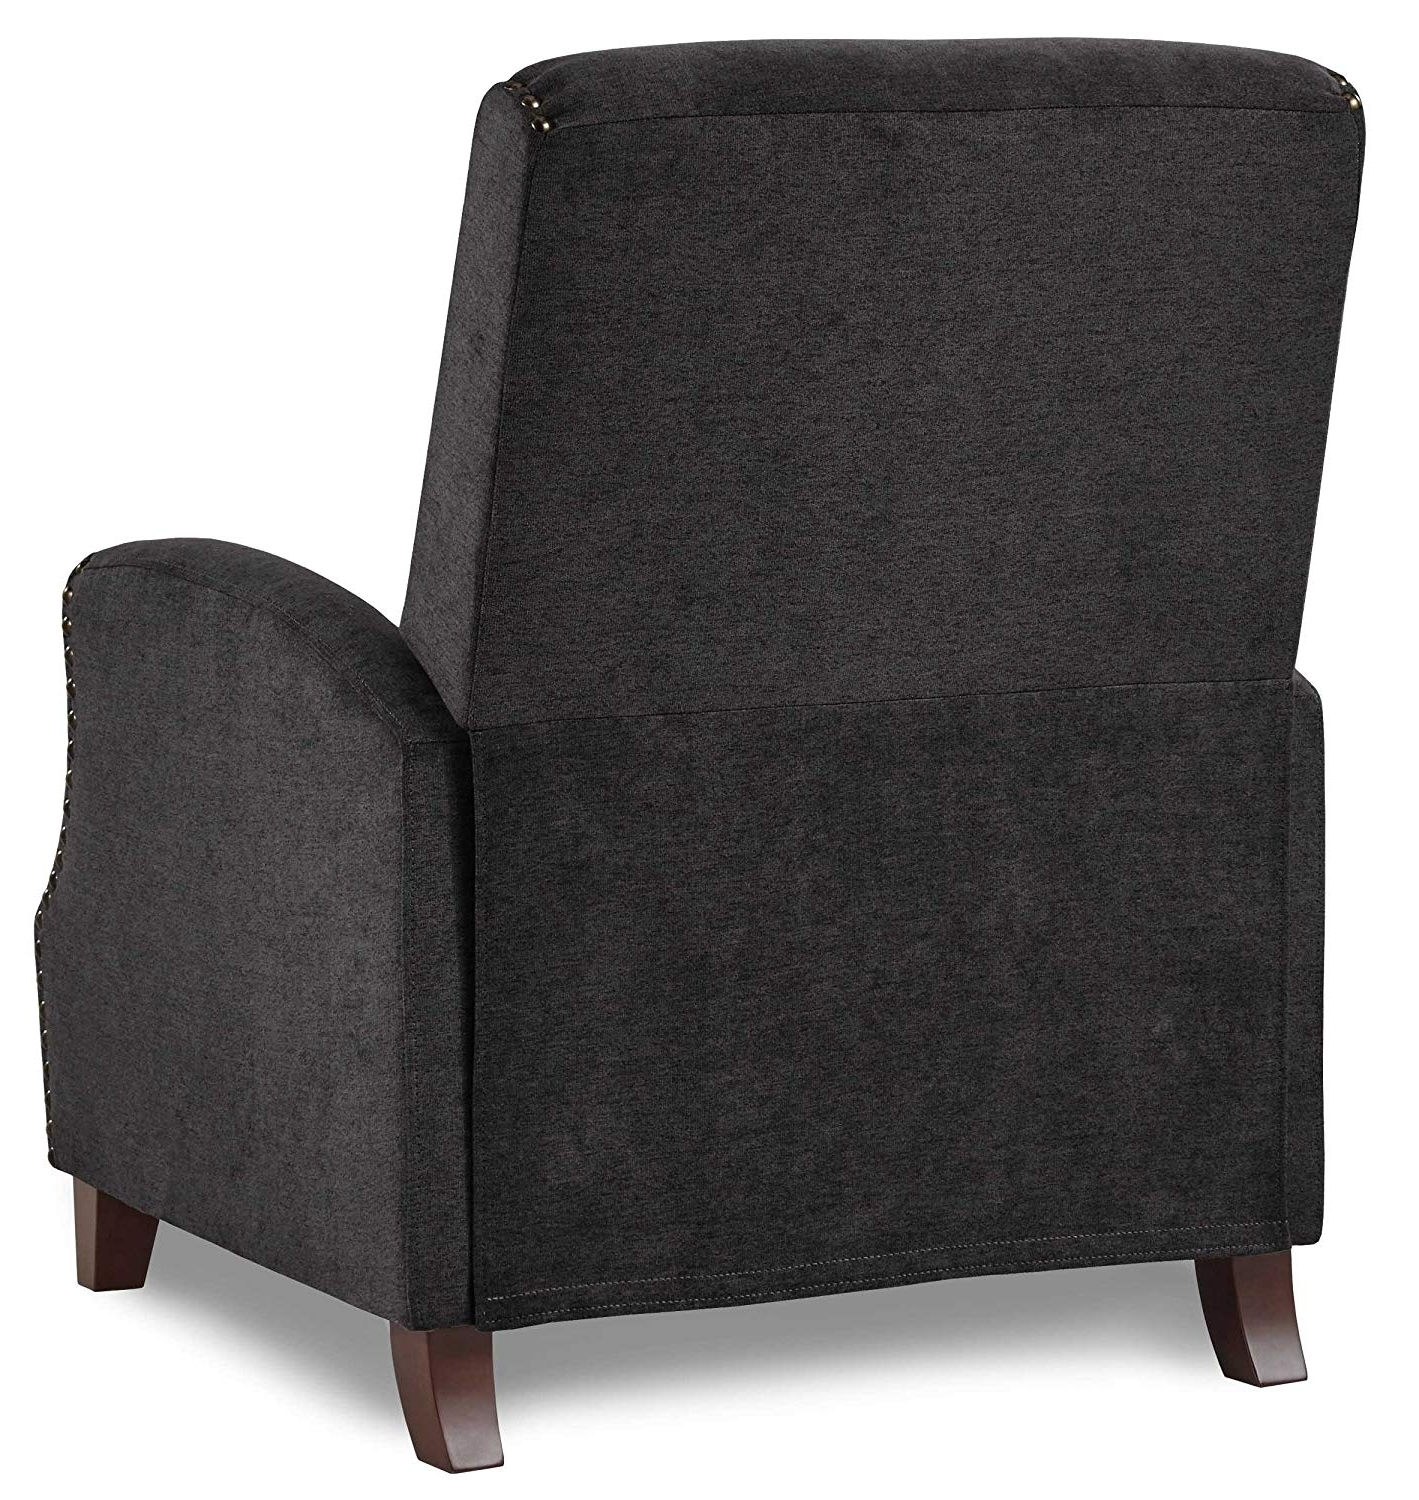 Favorite Walden Upholstered Arm Chairs Intended For Amazon: Homelegance Walden Push Back Fabric Recliner, Gray (View 11 of 20)